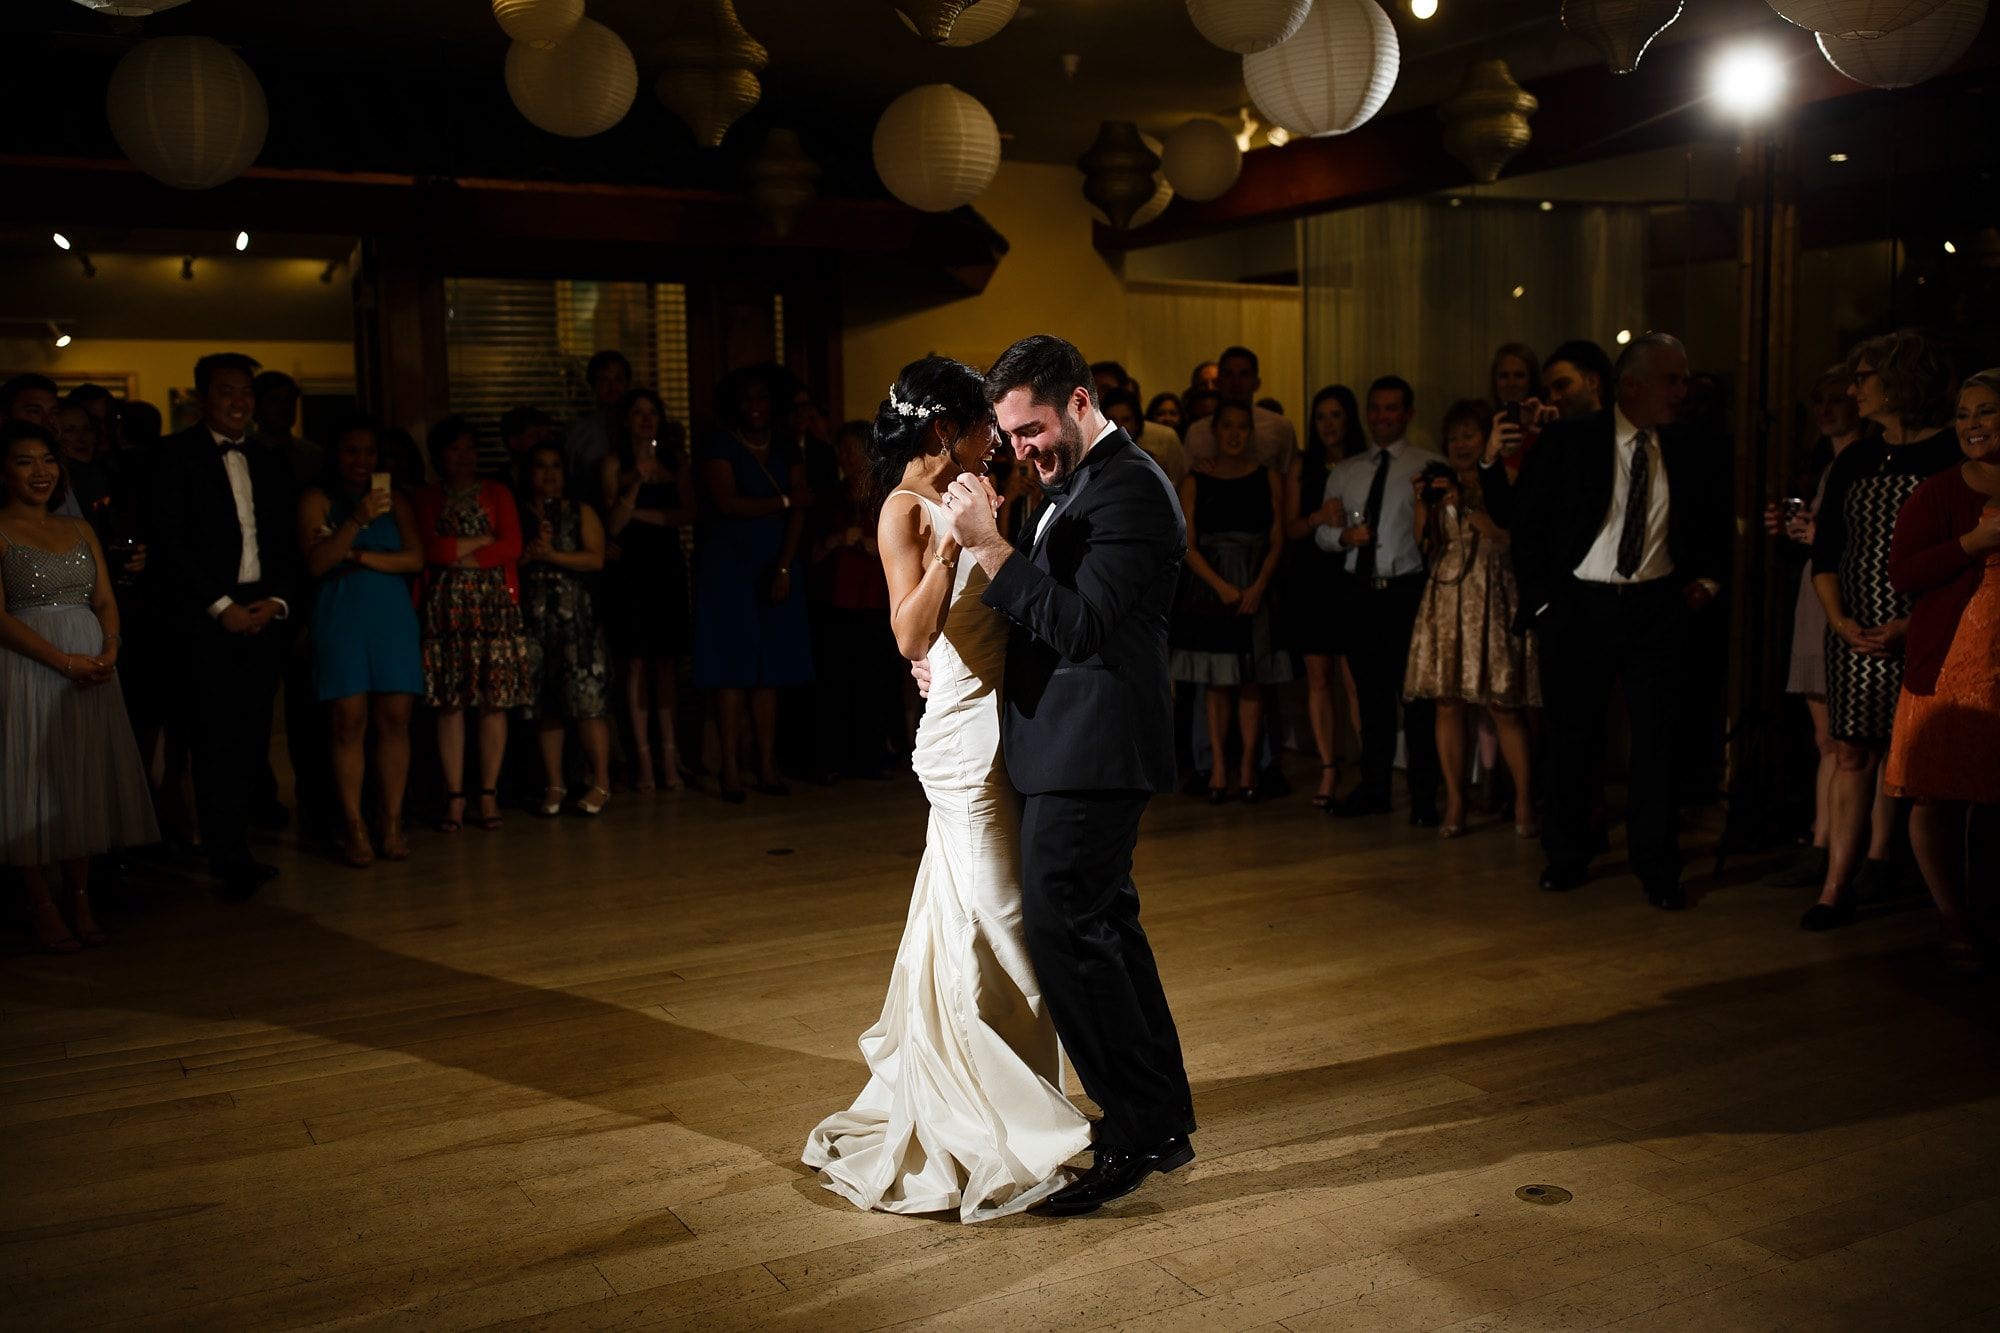 The bride and groom share their first dance on the third floor at Rembrandt Yard during their wedding reception